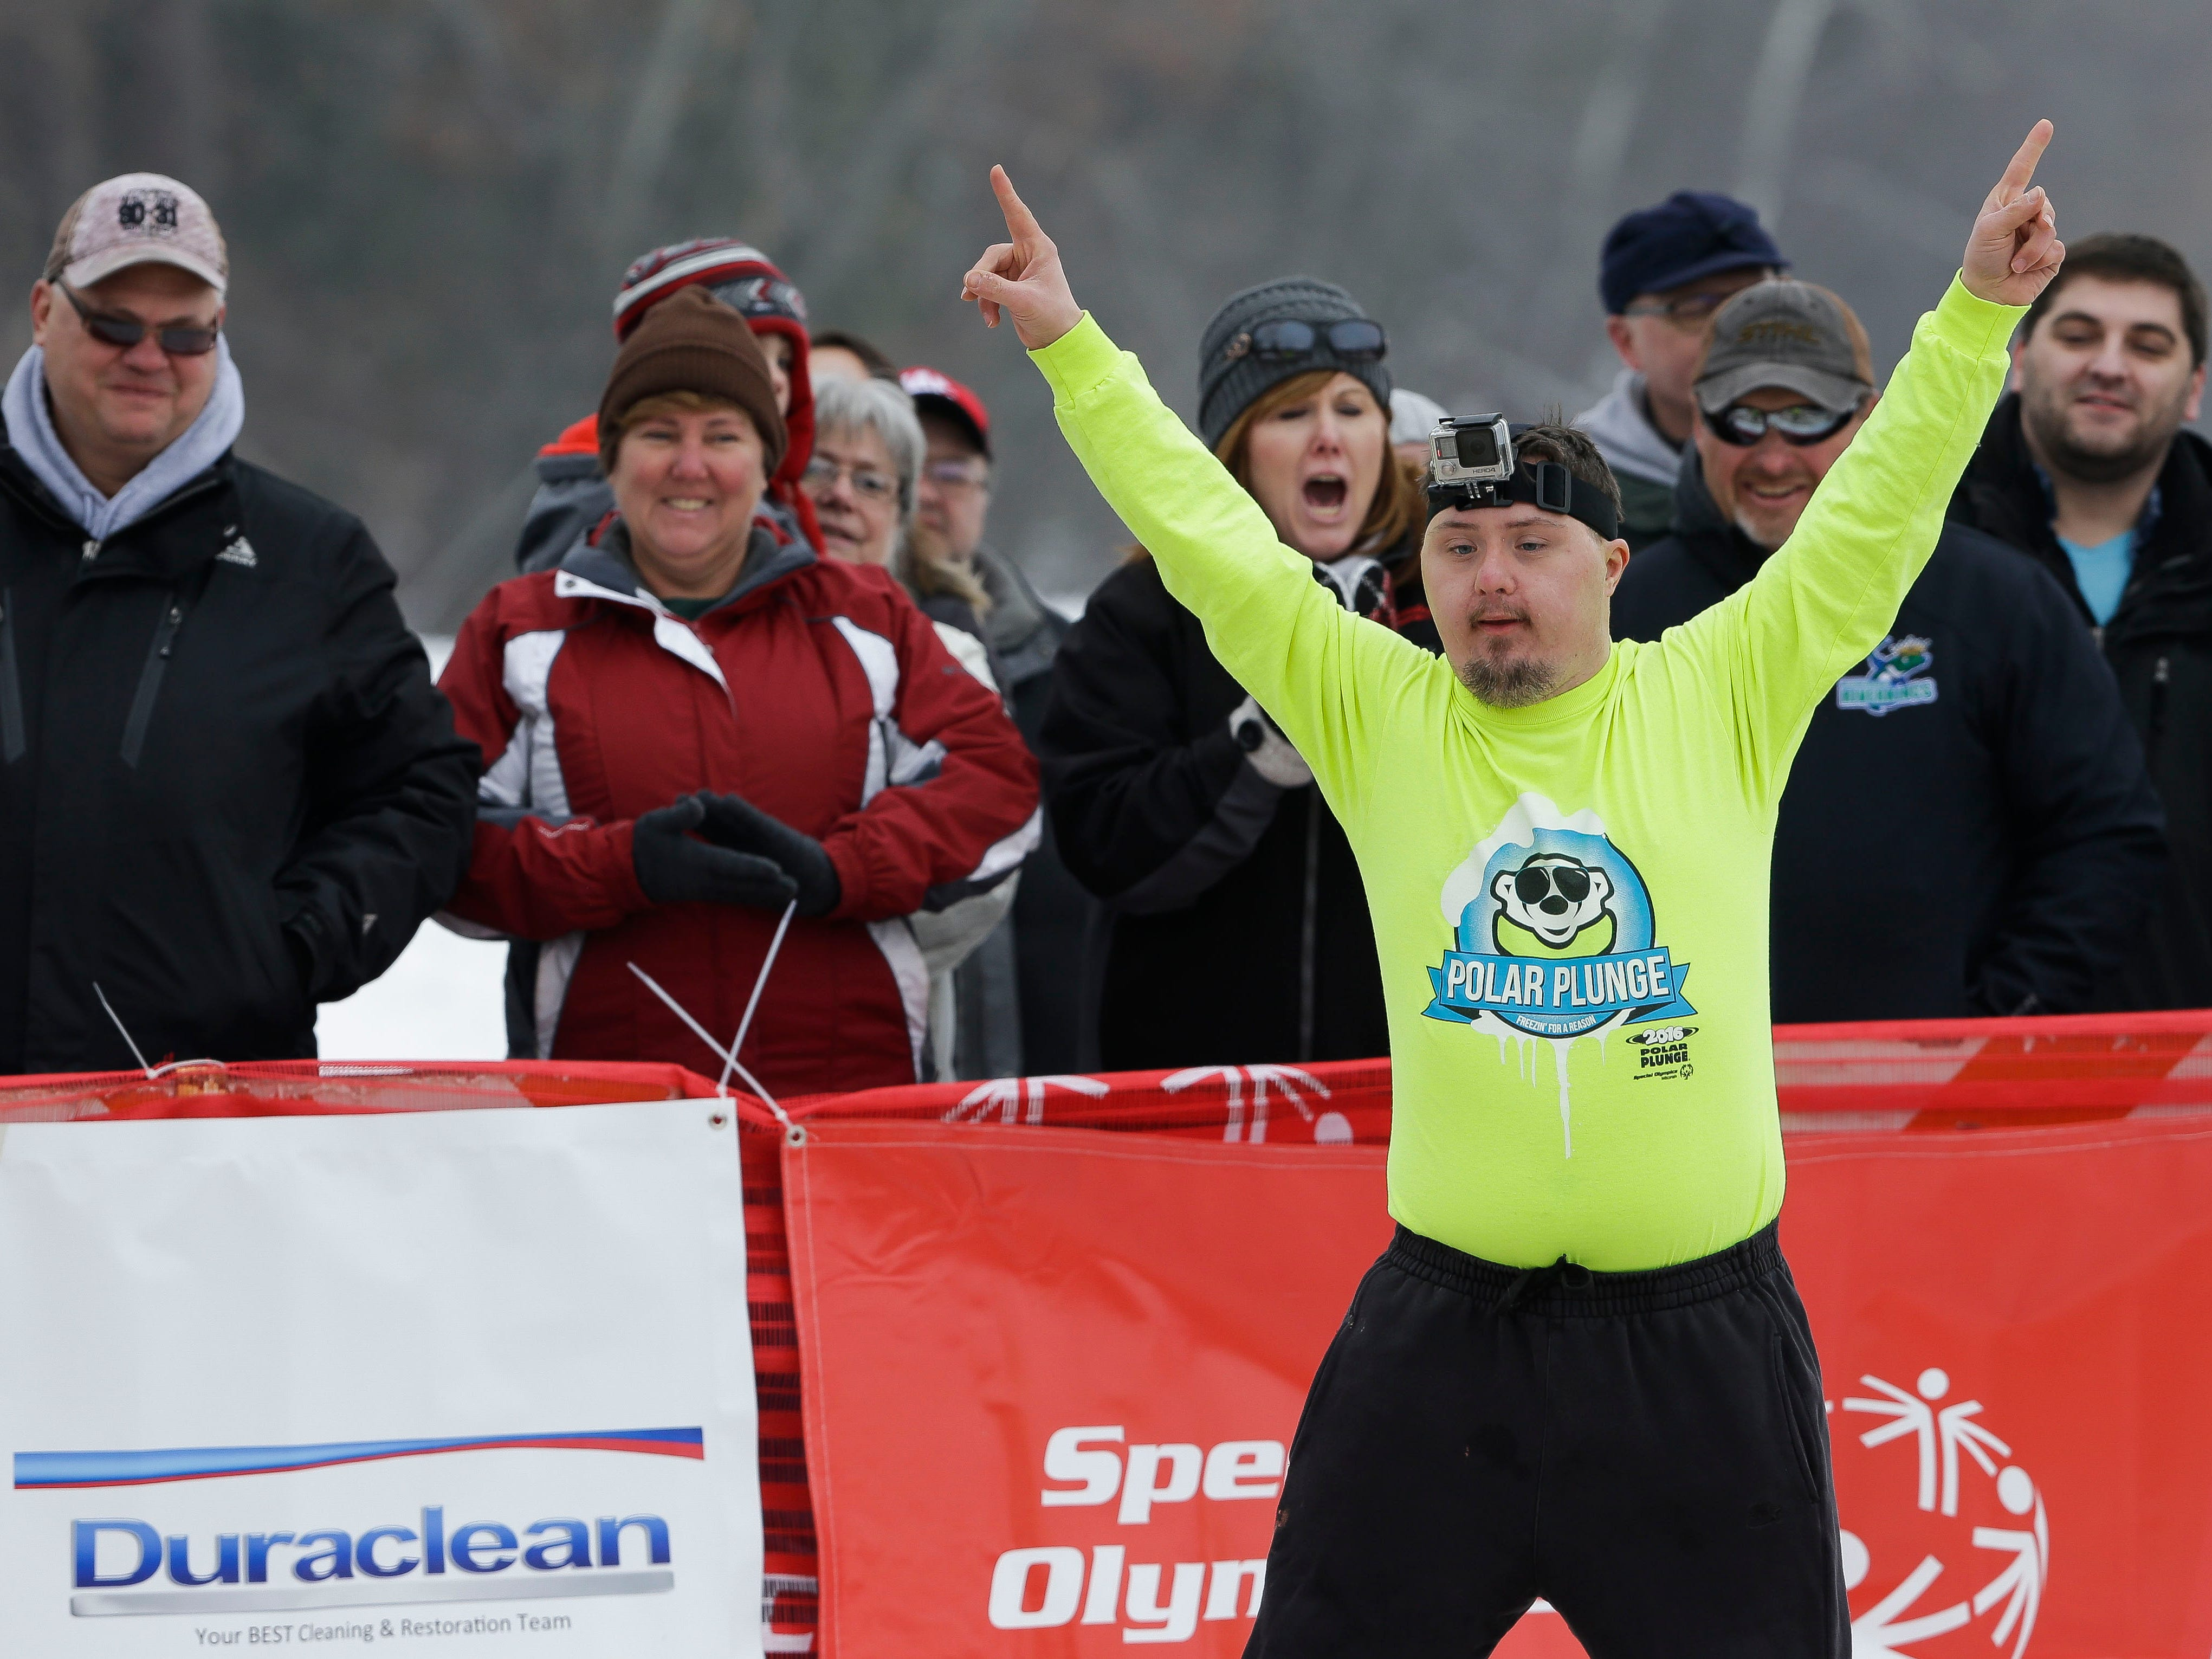 A participant pumps up the crowd before taking a polar plunge on Saturday, February 2, 2019, at Anchor Bay Bar and Grill in Biron, Wis. The event was one of many polar plunges across the state held as fundraisers for Special Olympics Wisconsin.Tork Mason/USA TODAY NETWORK-Wisconsin